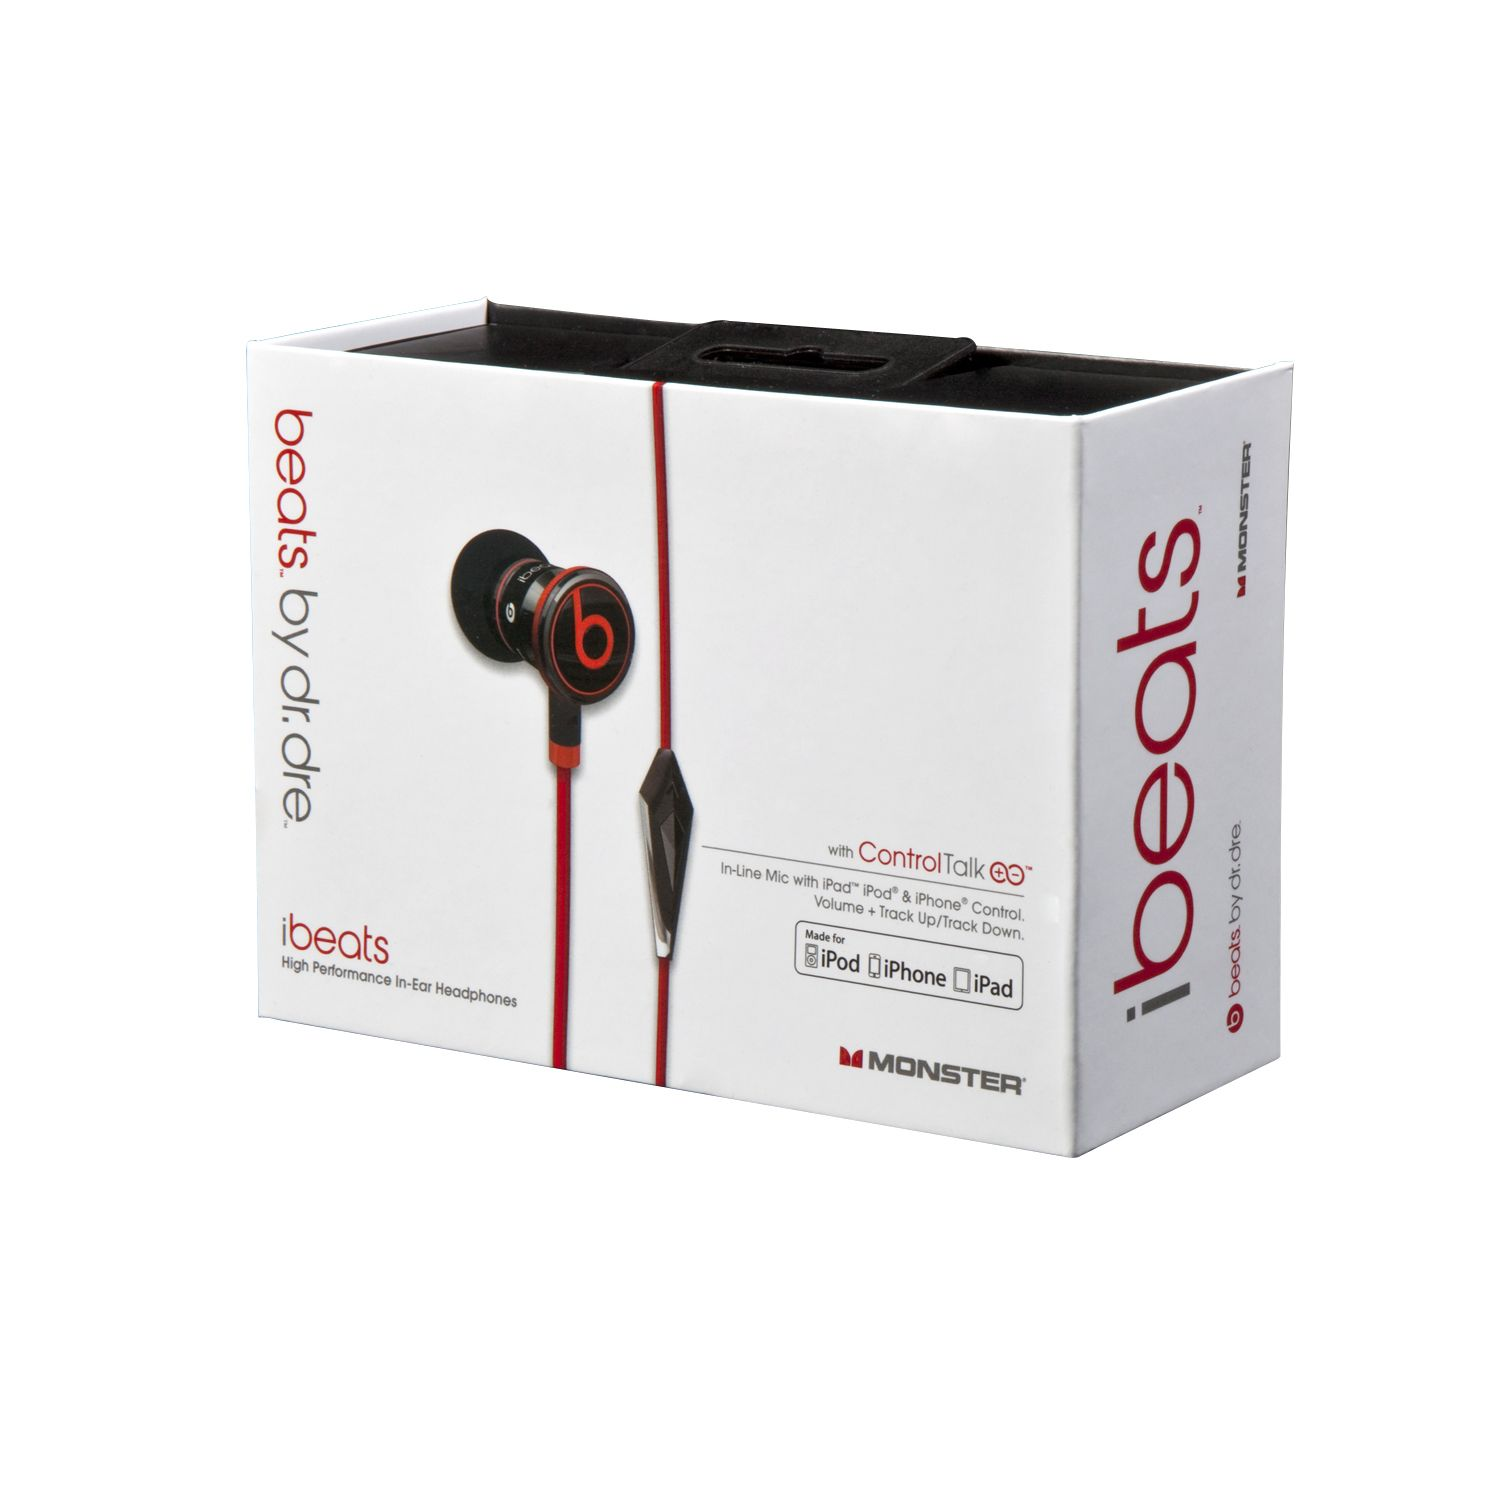 Monster iBeats™ Headphones with ControlTalk&#8482 - Black